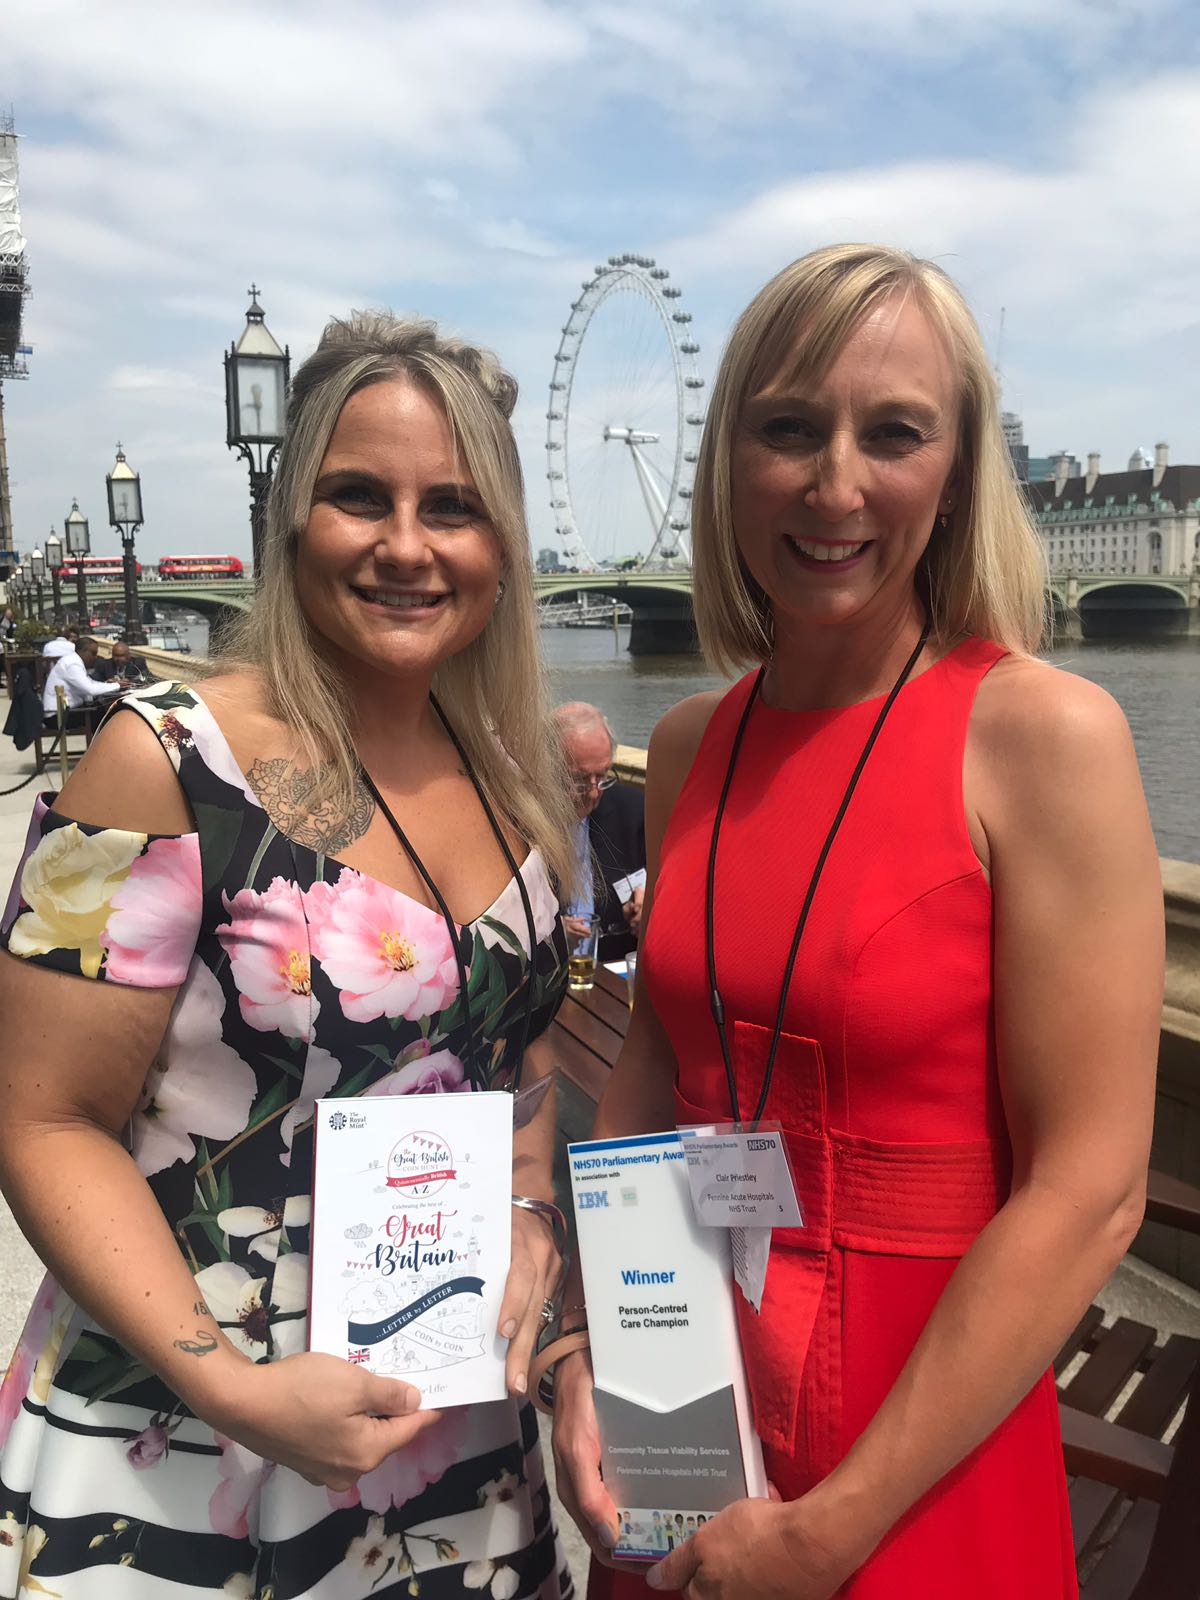 Natalie Duffy and Clair Priestley at the Houses of Parliament receiving the award.